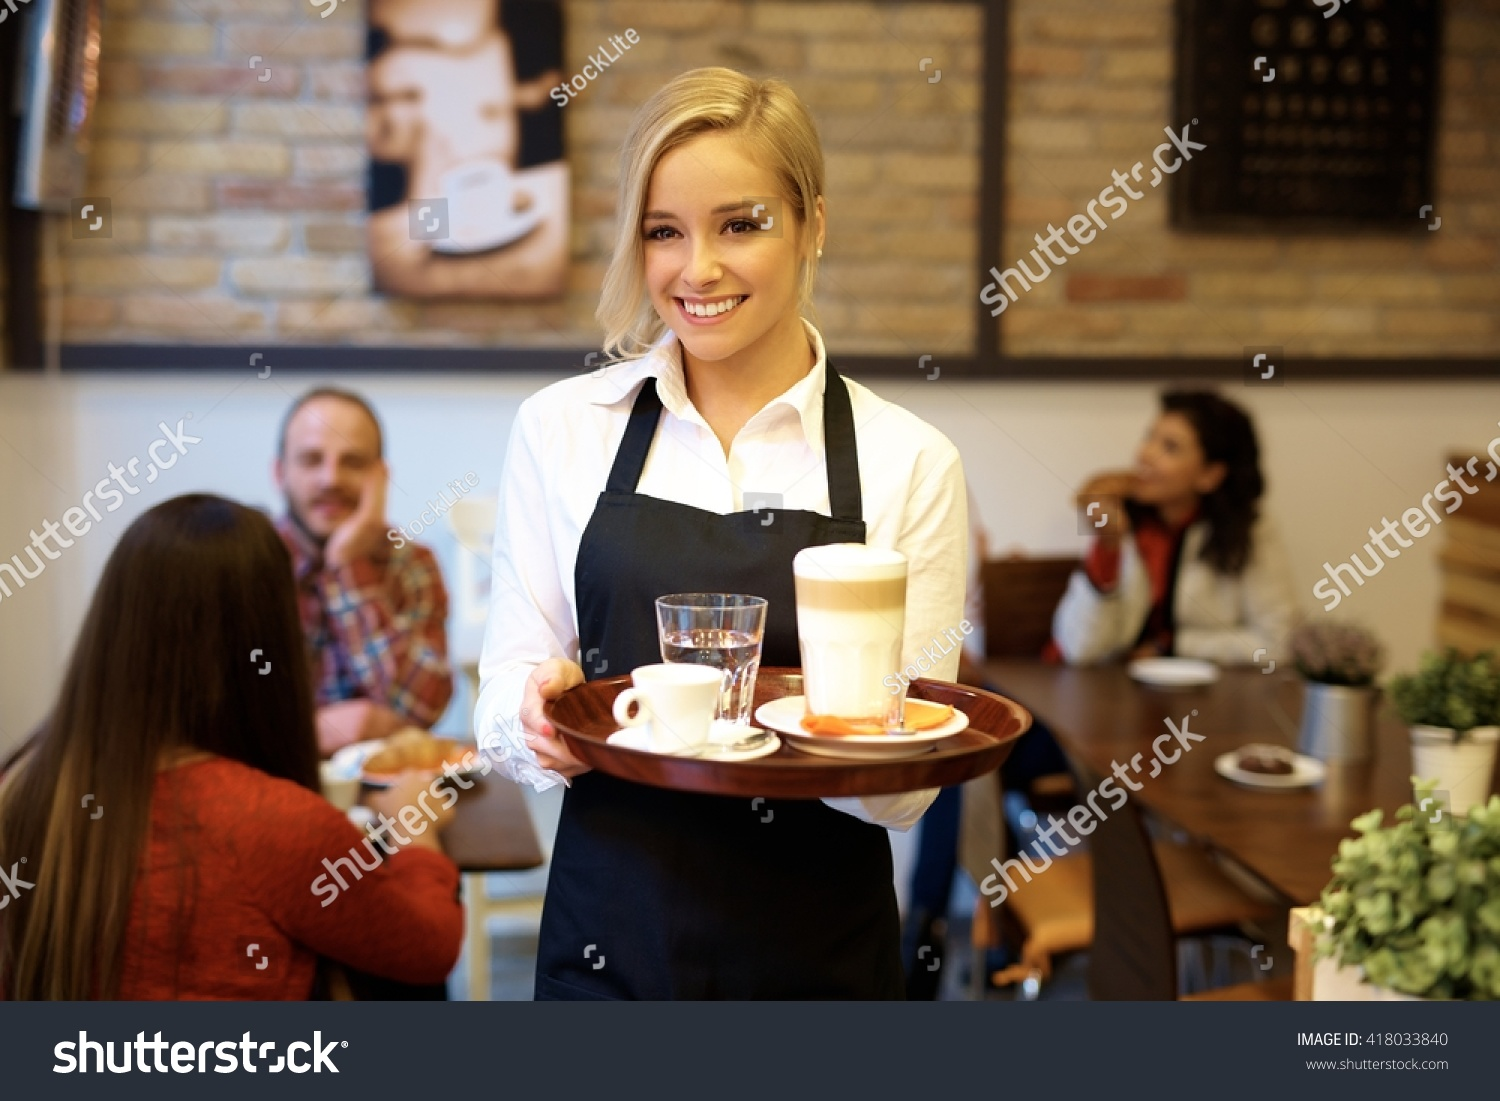 awful example of stock photos for a restaurant